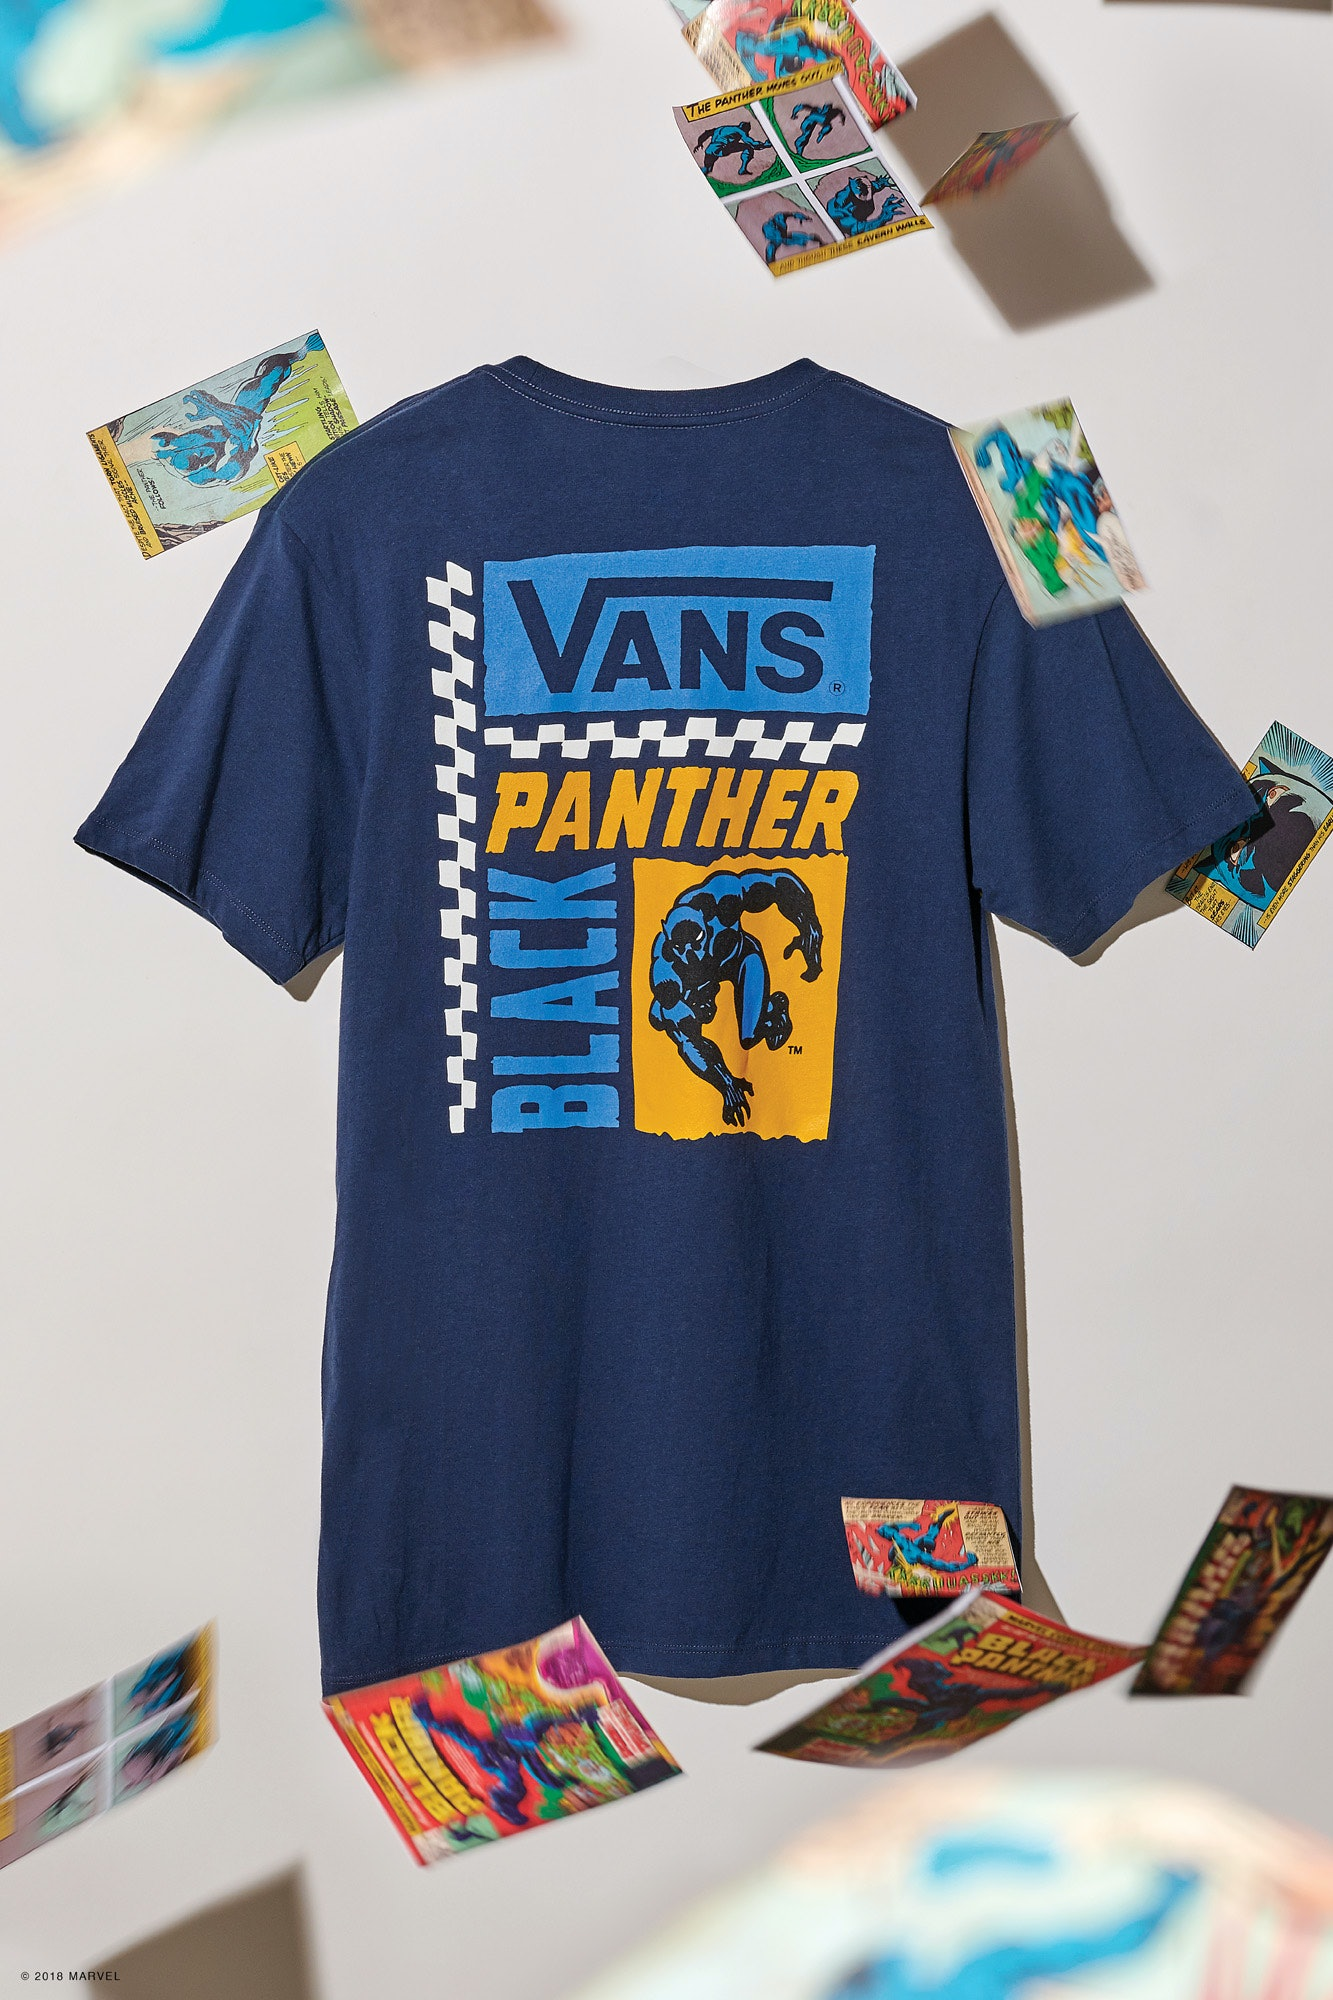 What's In The Vans x Marvel Line? There Will Be More Than 70 Pieces ...